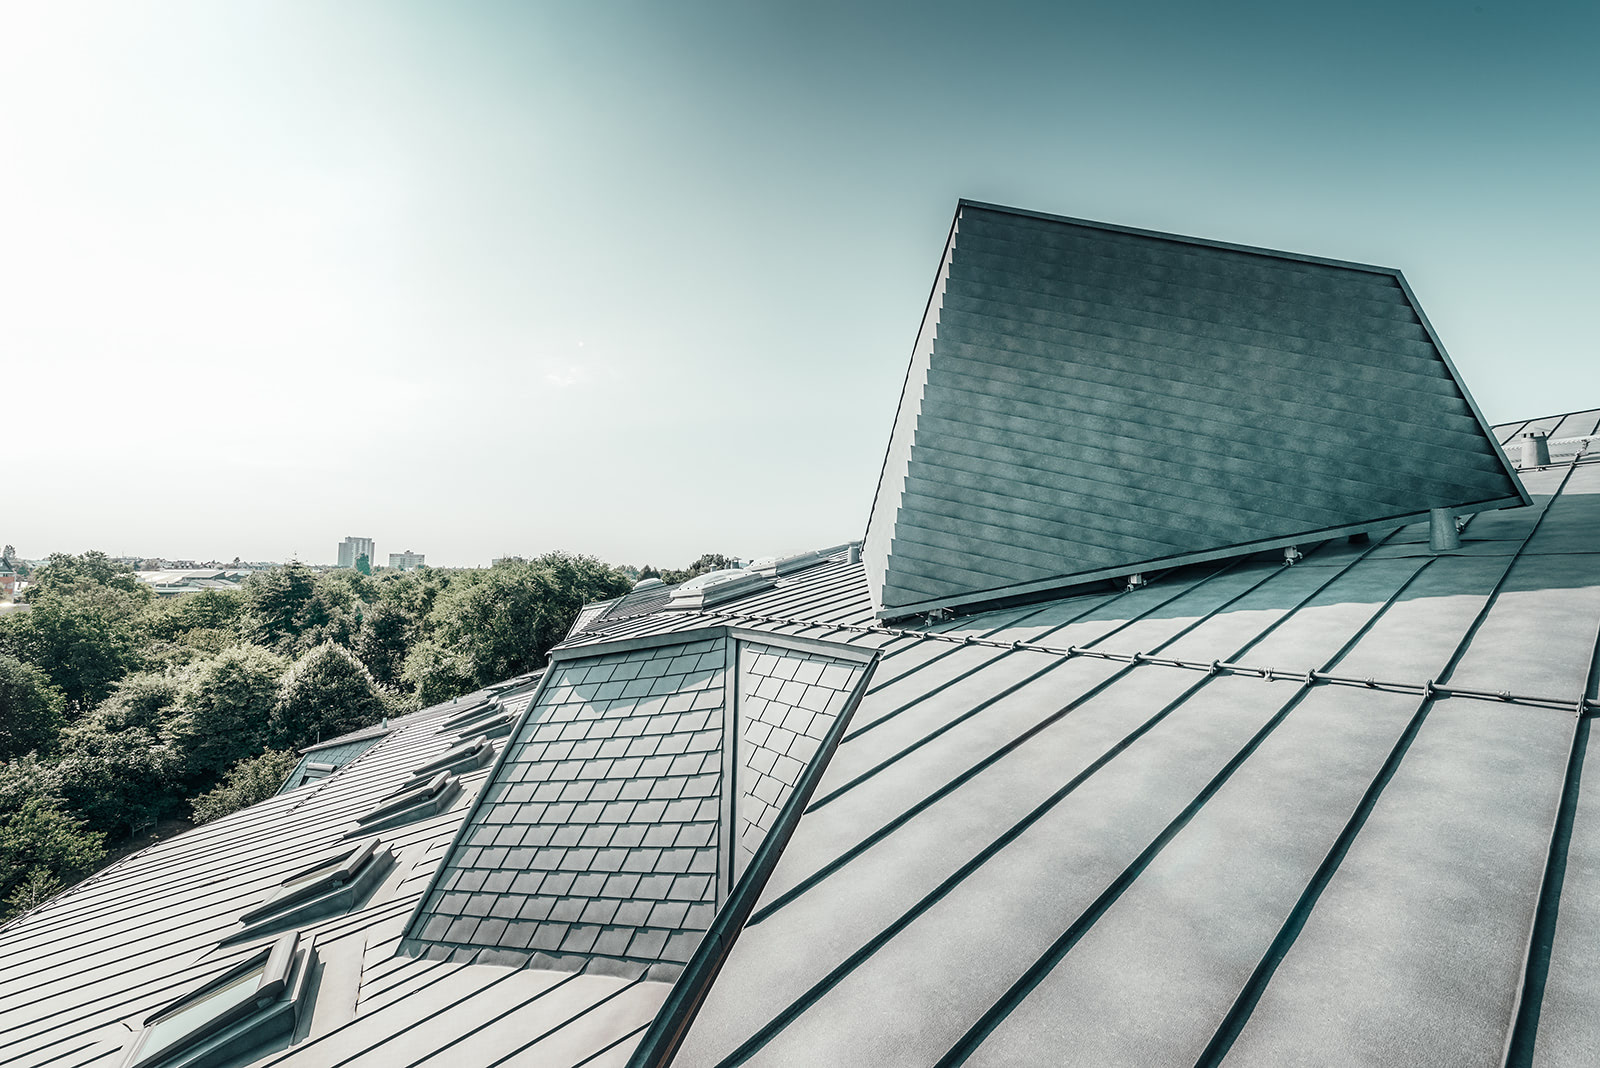 renovated roof, detail, Prefalz, hidden air conditioning system with a partition wall made of shingles, slightly marbled color P.10 stone grey